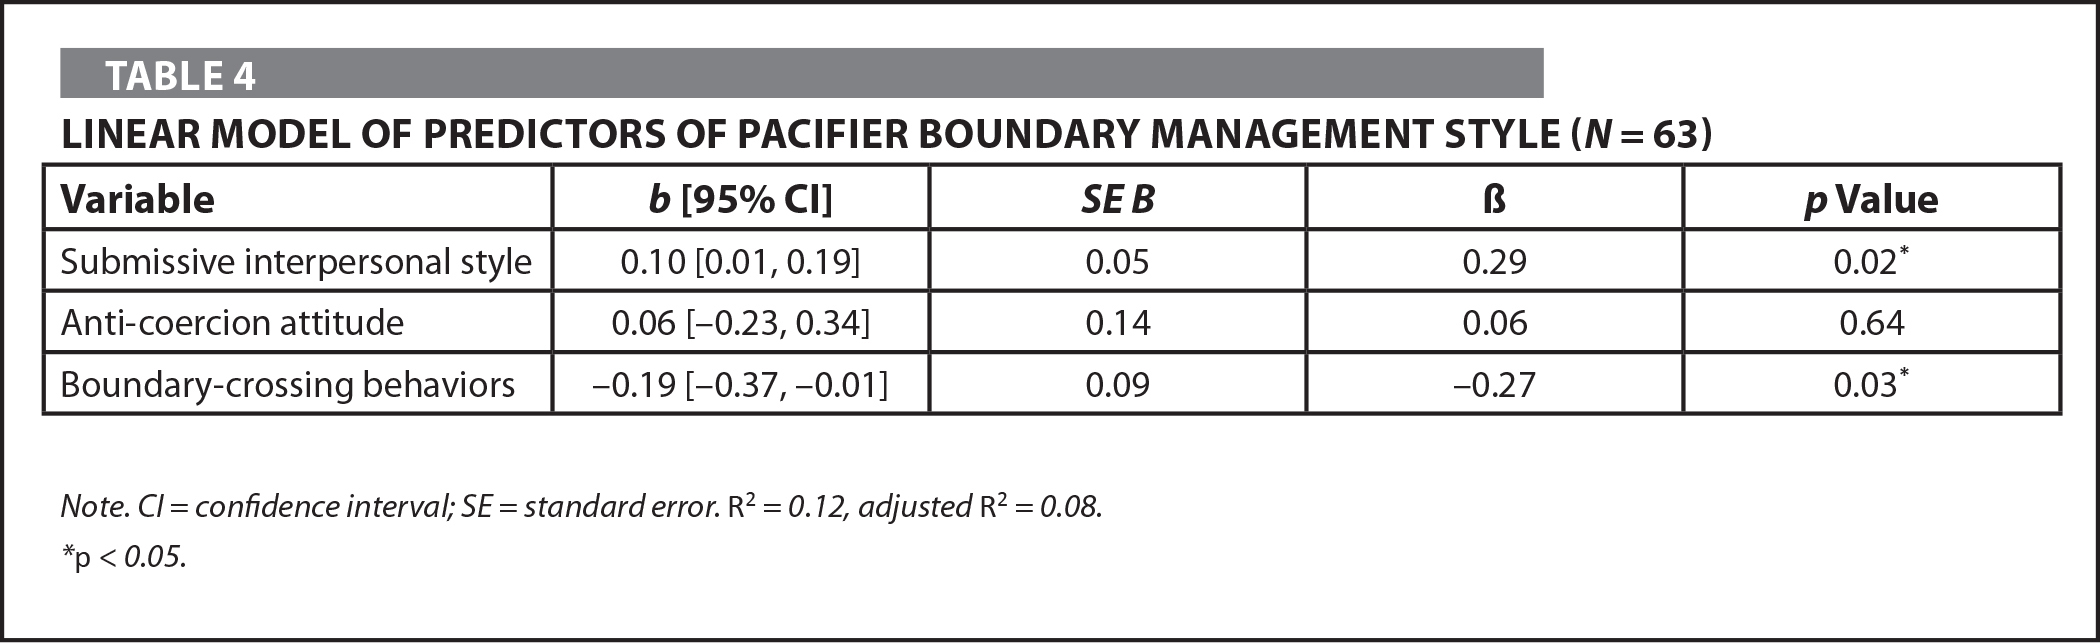 Linear Model of Predictors of Pacifier Boundary Management Style (N = 63)